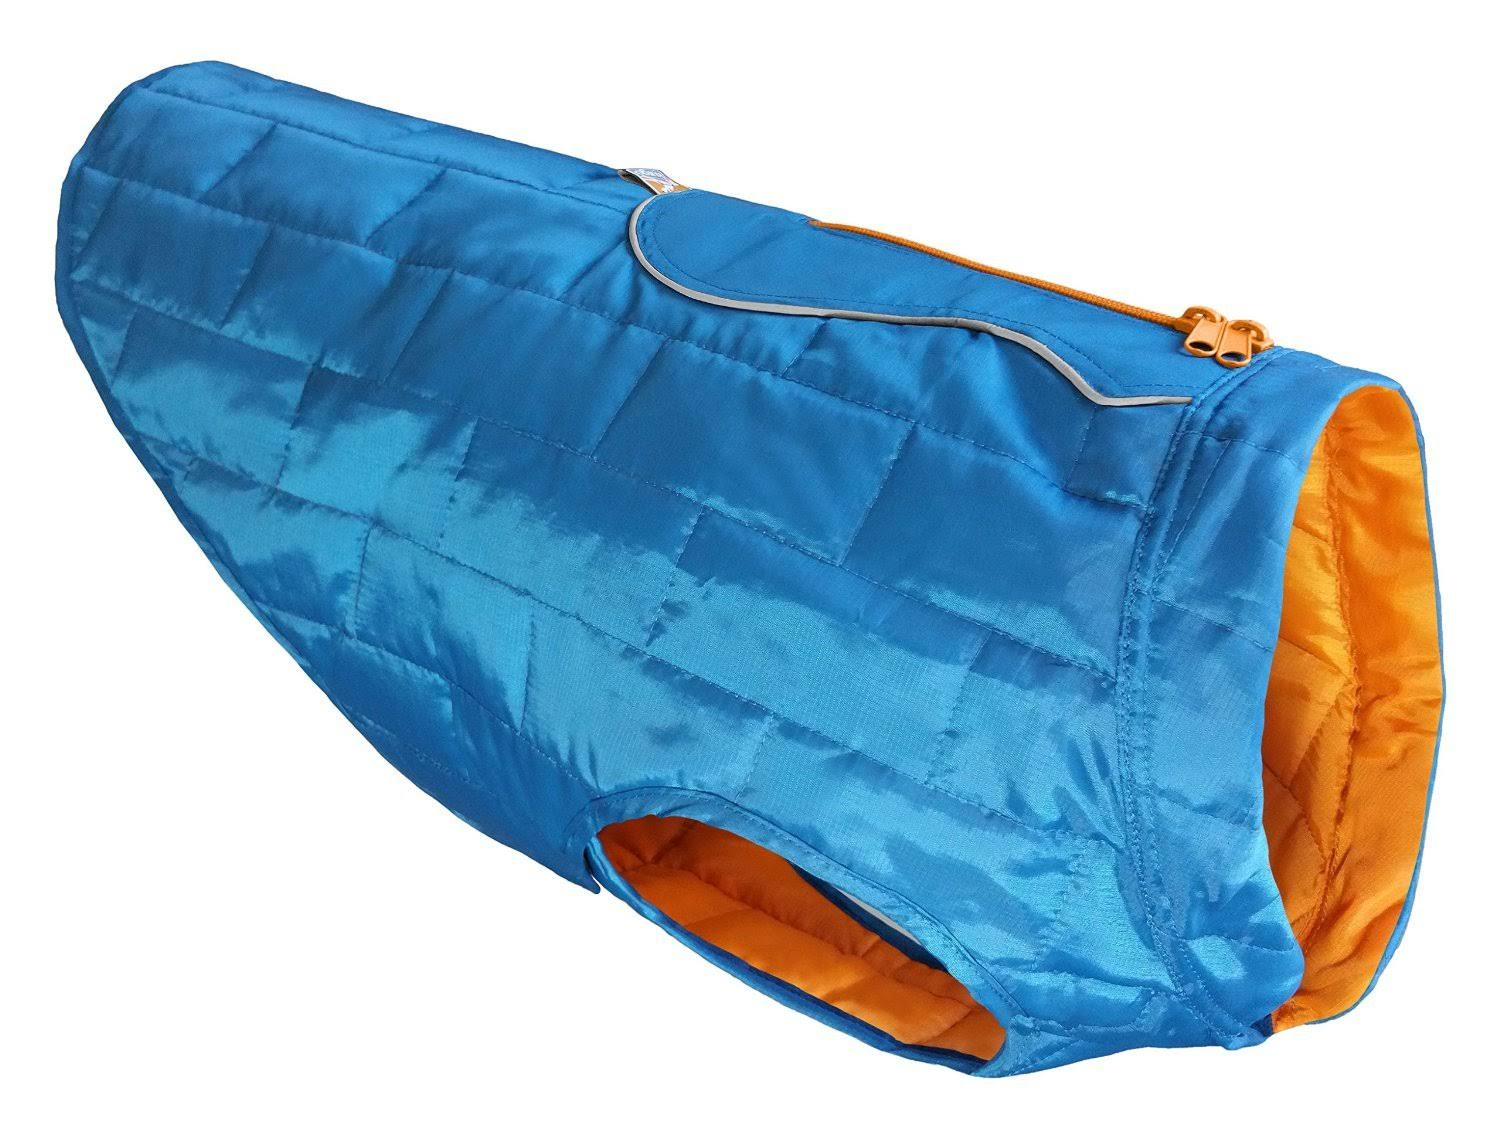 Kurgo Loft Waterproof Dog Jacket - Blue, Large